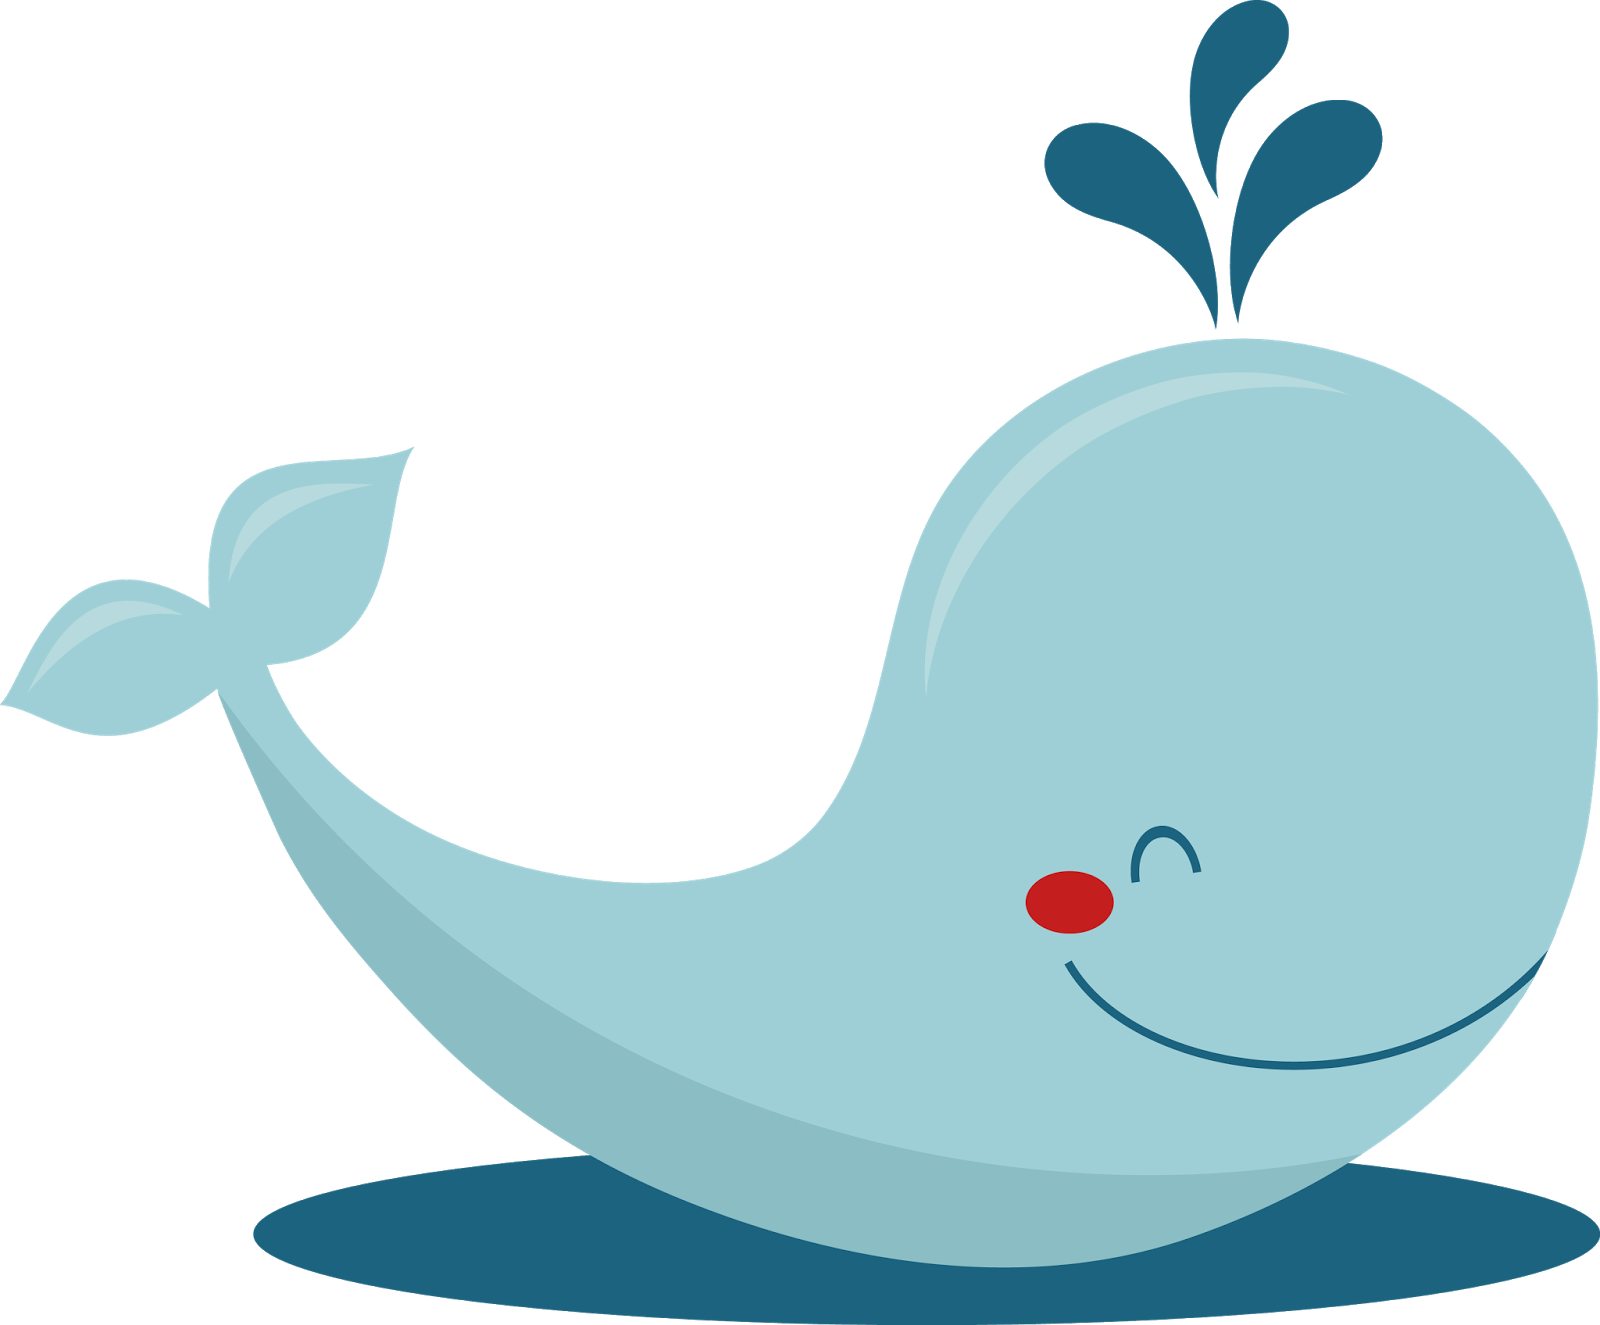 Cute Whale Png Photo - Baby Whale, Transparent background PNG HD thumbnail